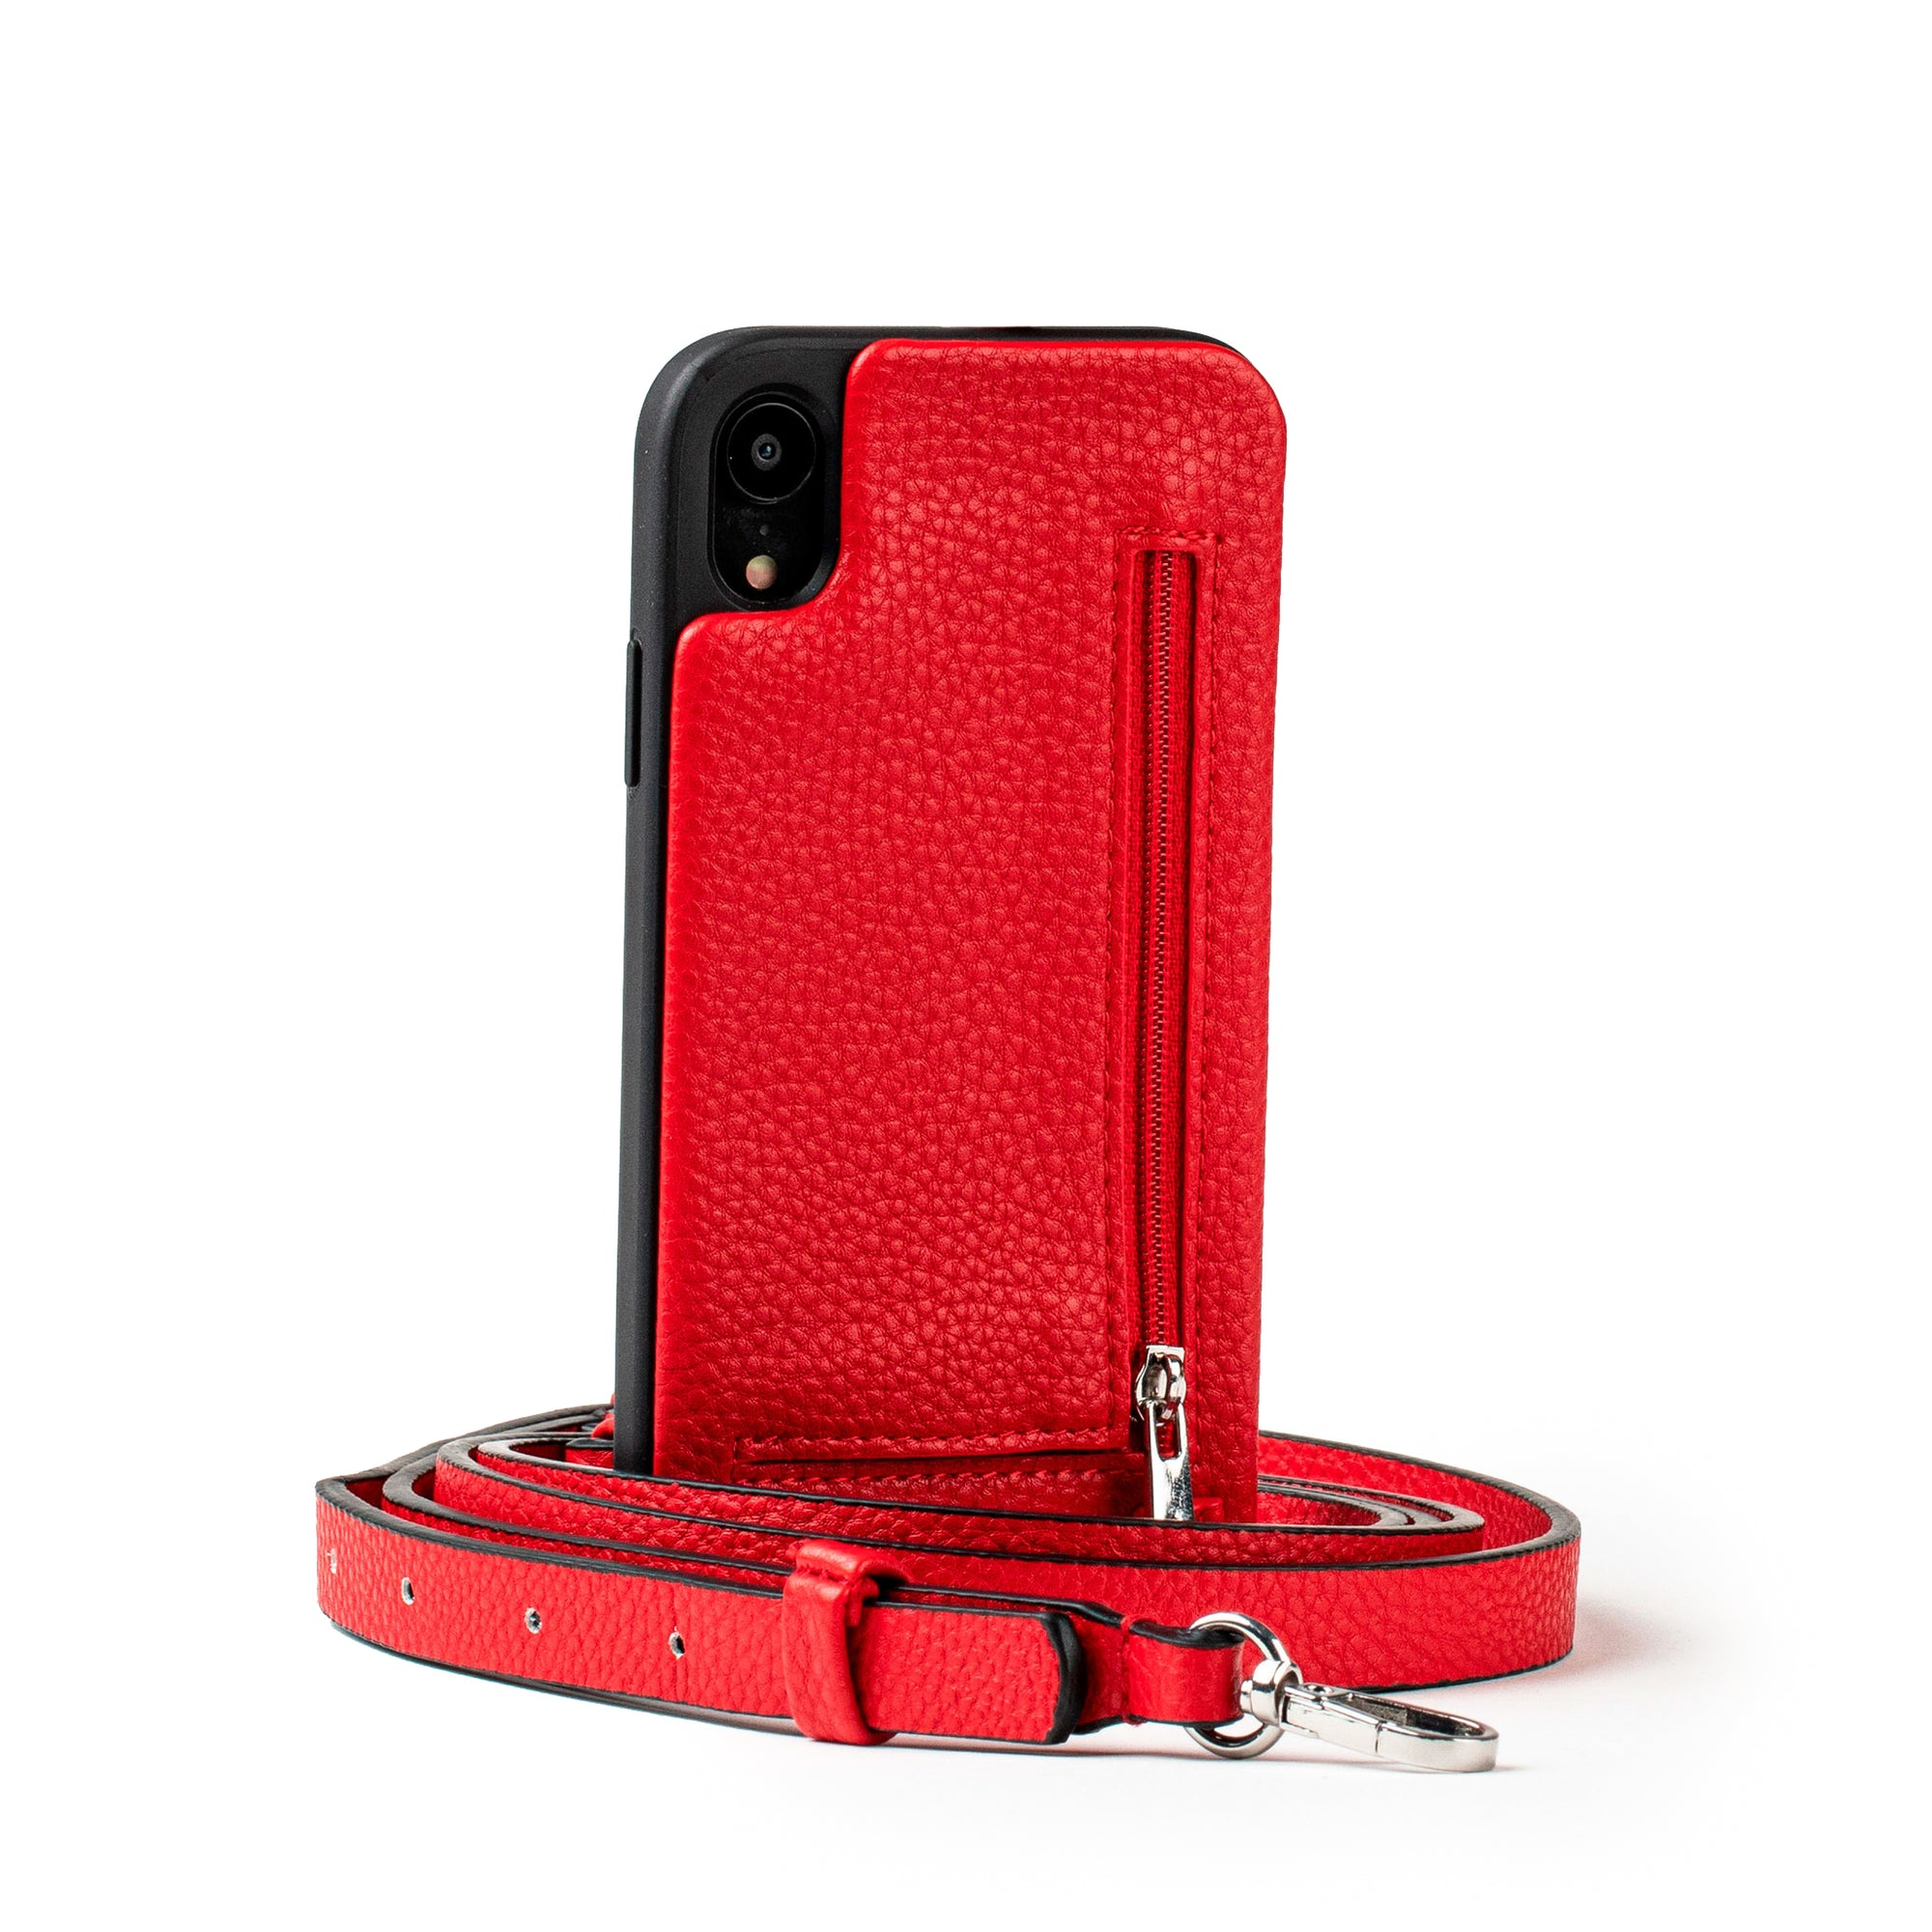 Scarlett -Crossbody Cell Phone Case for iPhone XR